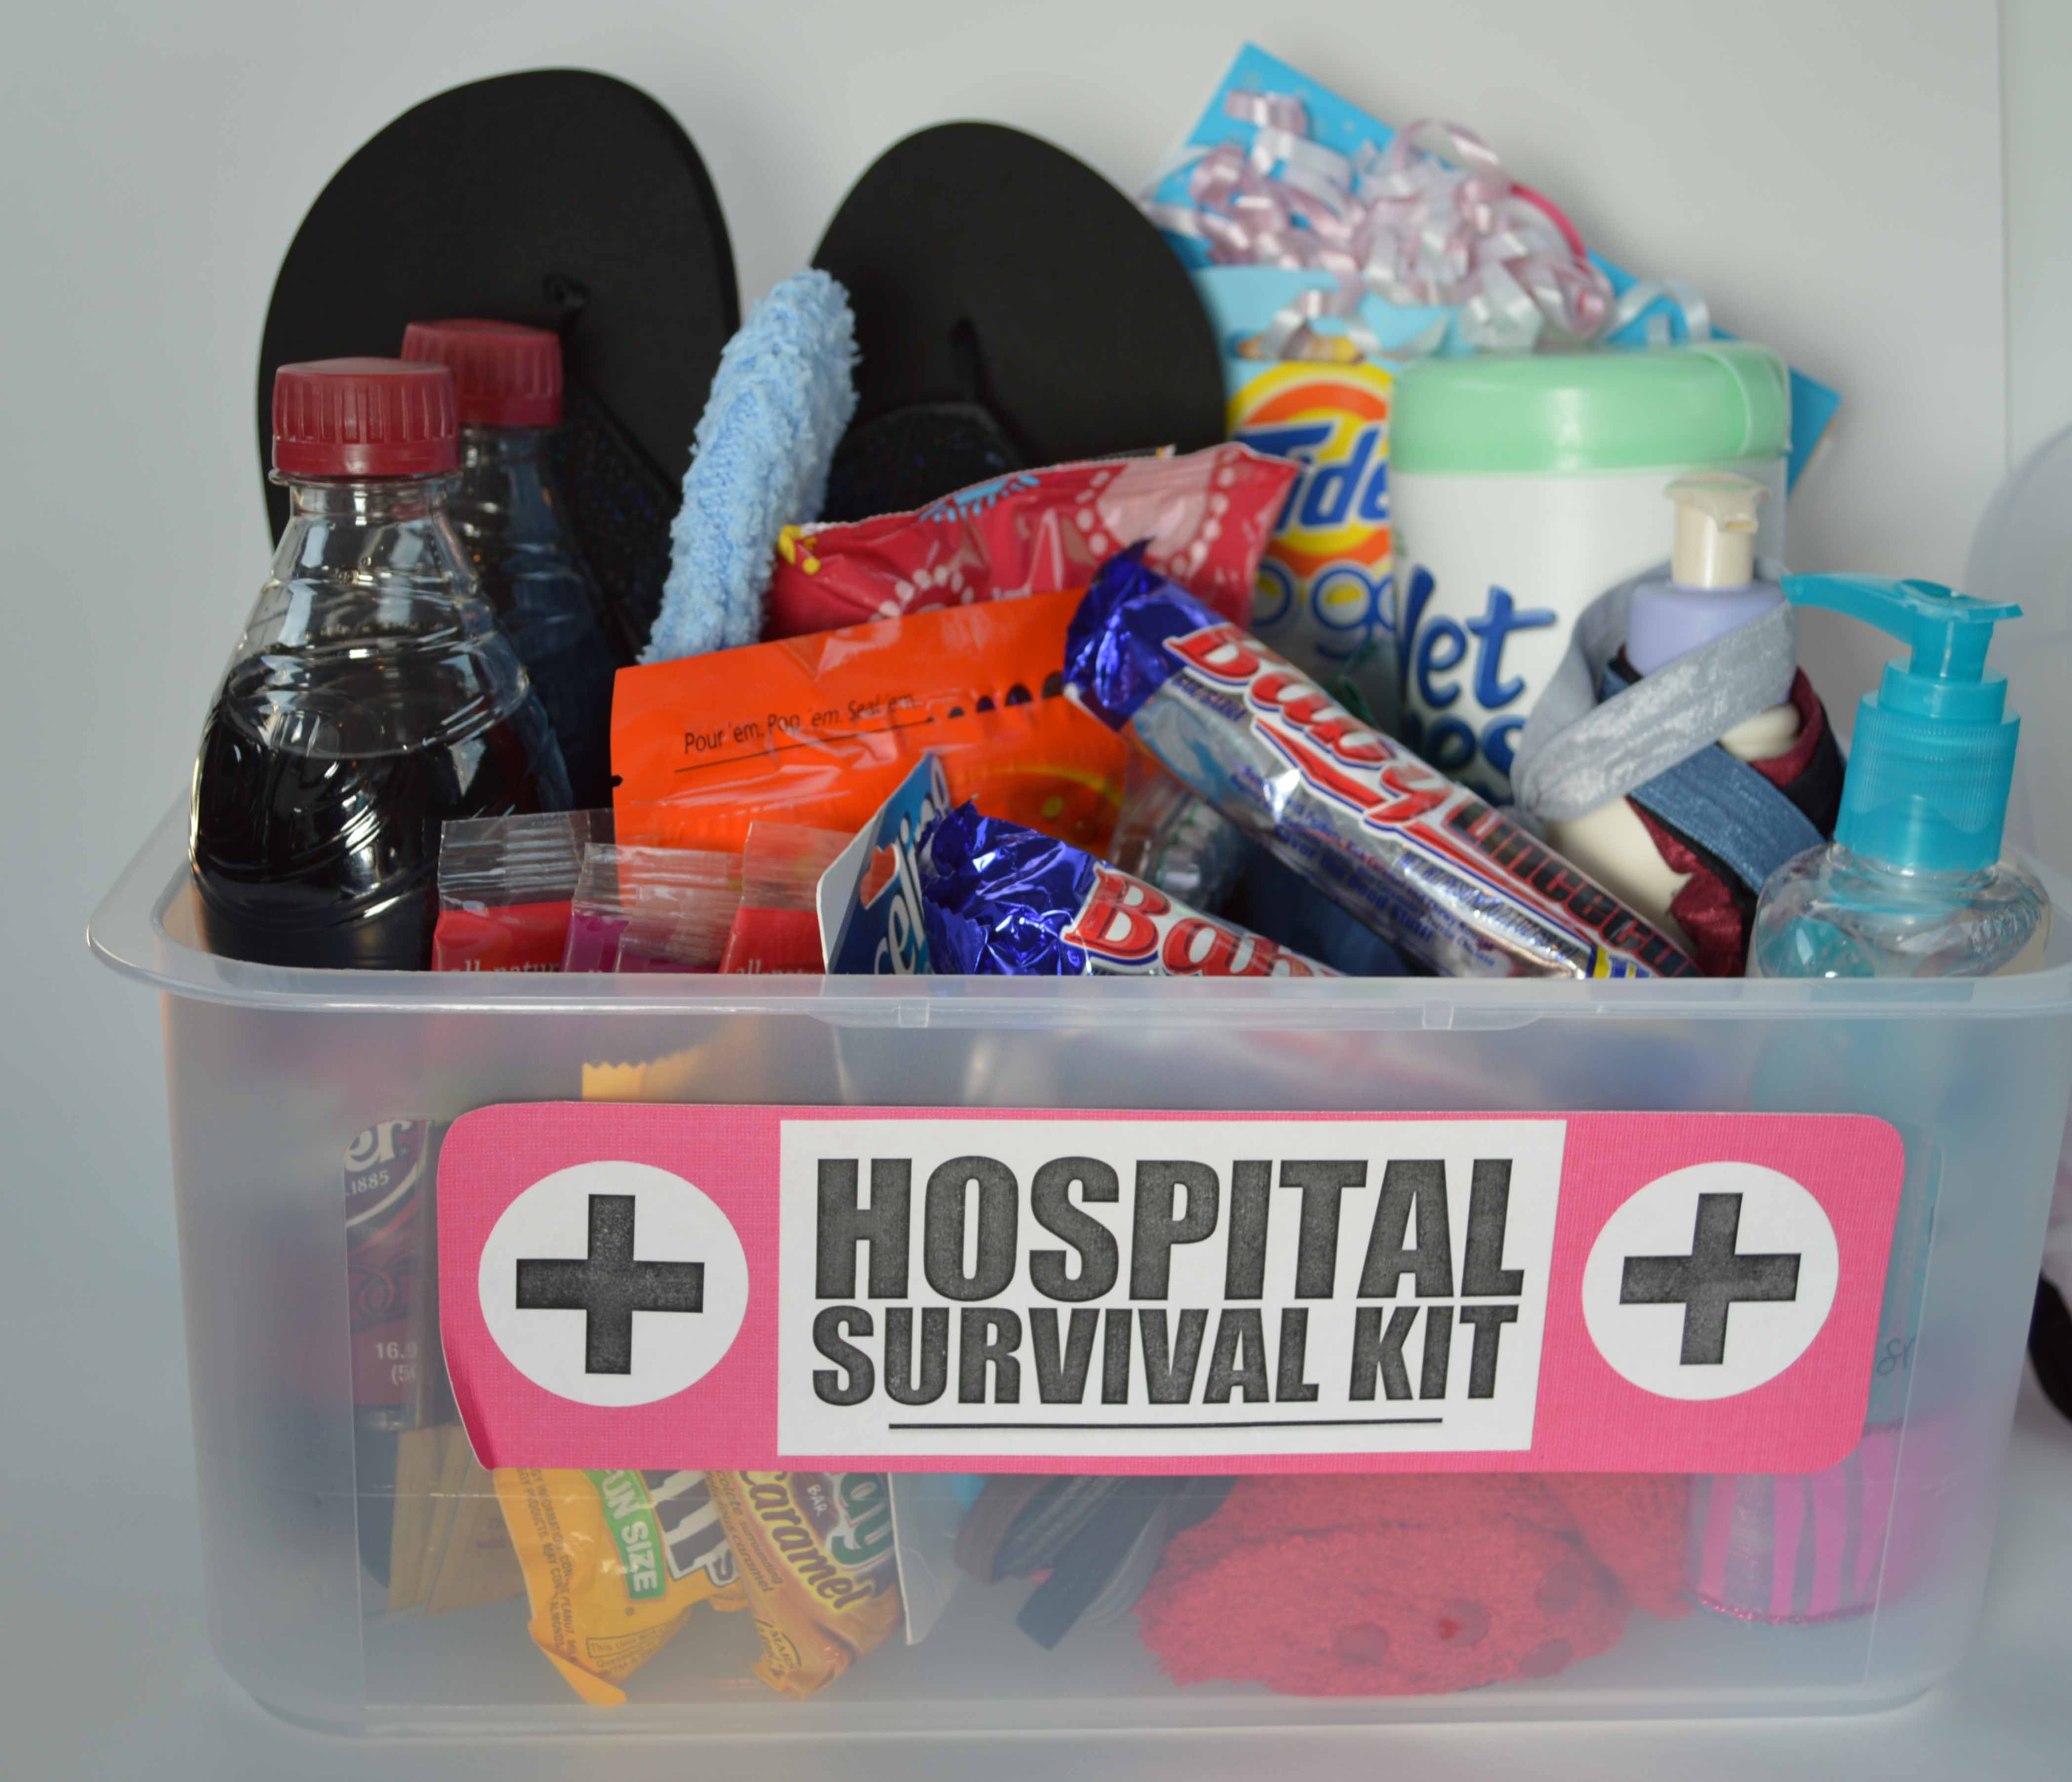 Hospital Survival Kit Baby Shower Gift  This  That  a little bit of craft